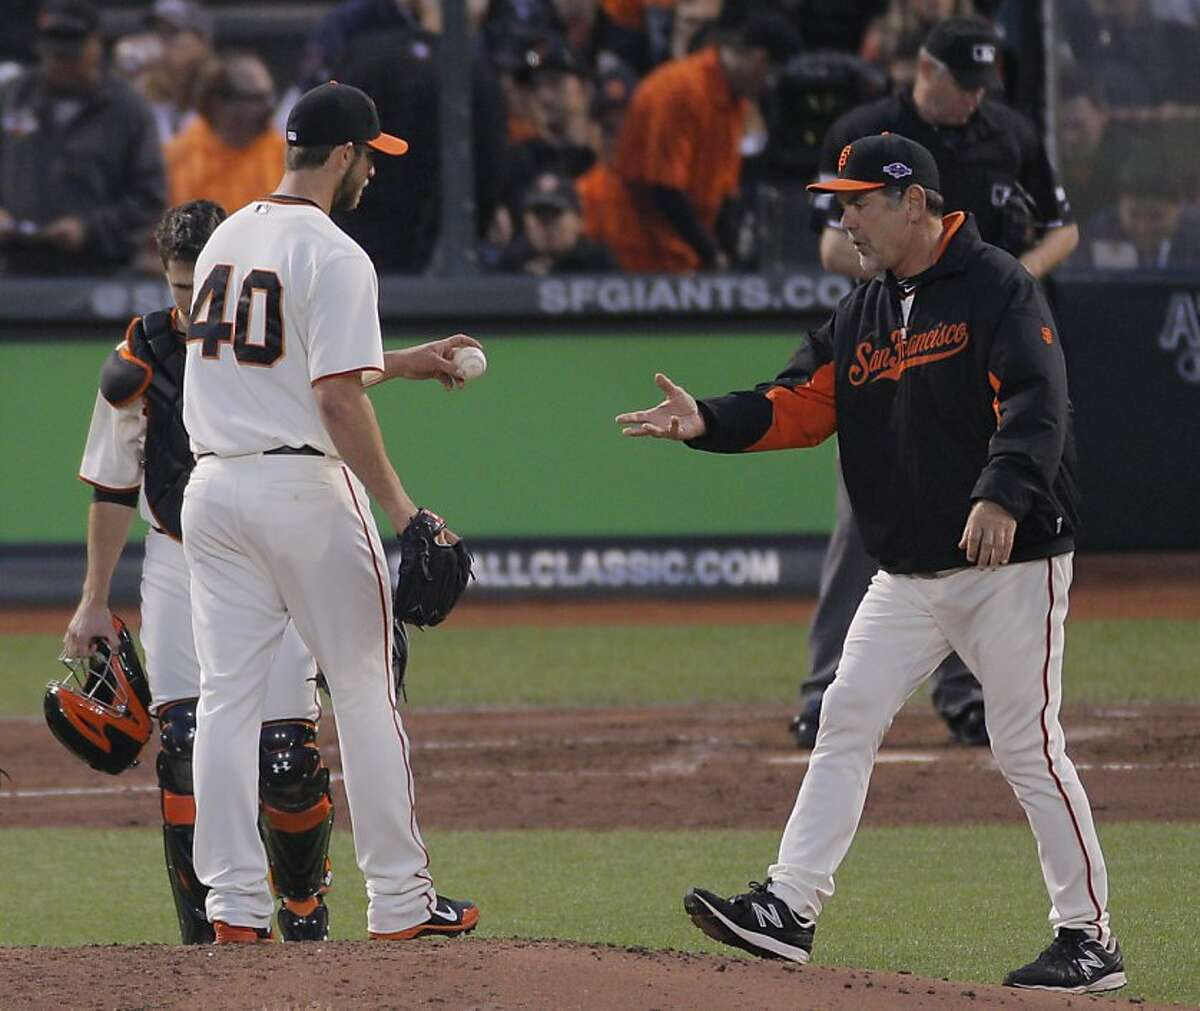 Giants' pitcher Madison Bumgarner hands the ball to Bruce Bochy in the fourth inning during game 1 of the NLCS at AT&T Park on Sunday, Oct. 14, 2012 in San Francisco, Calif.